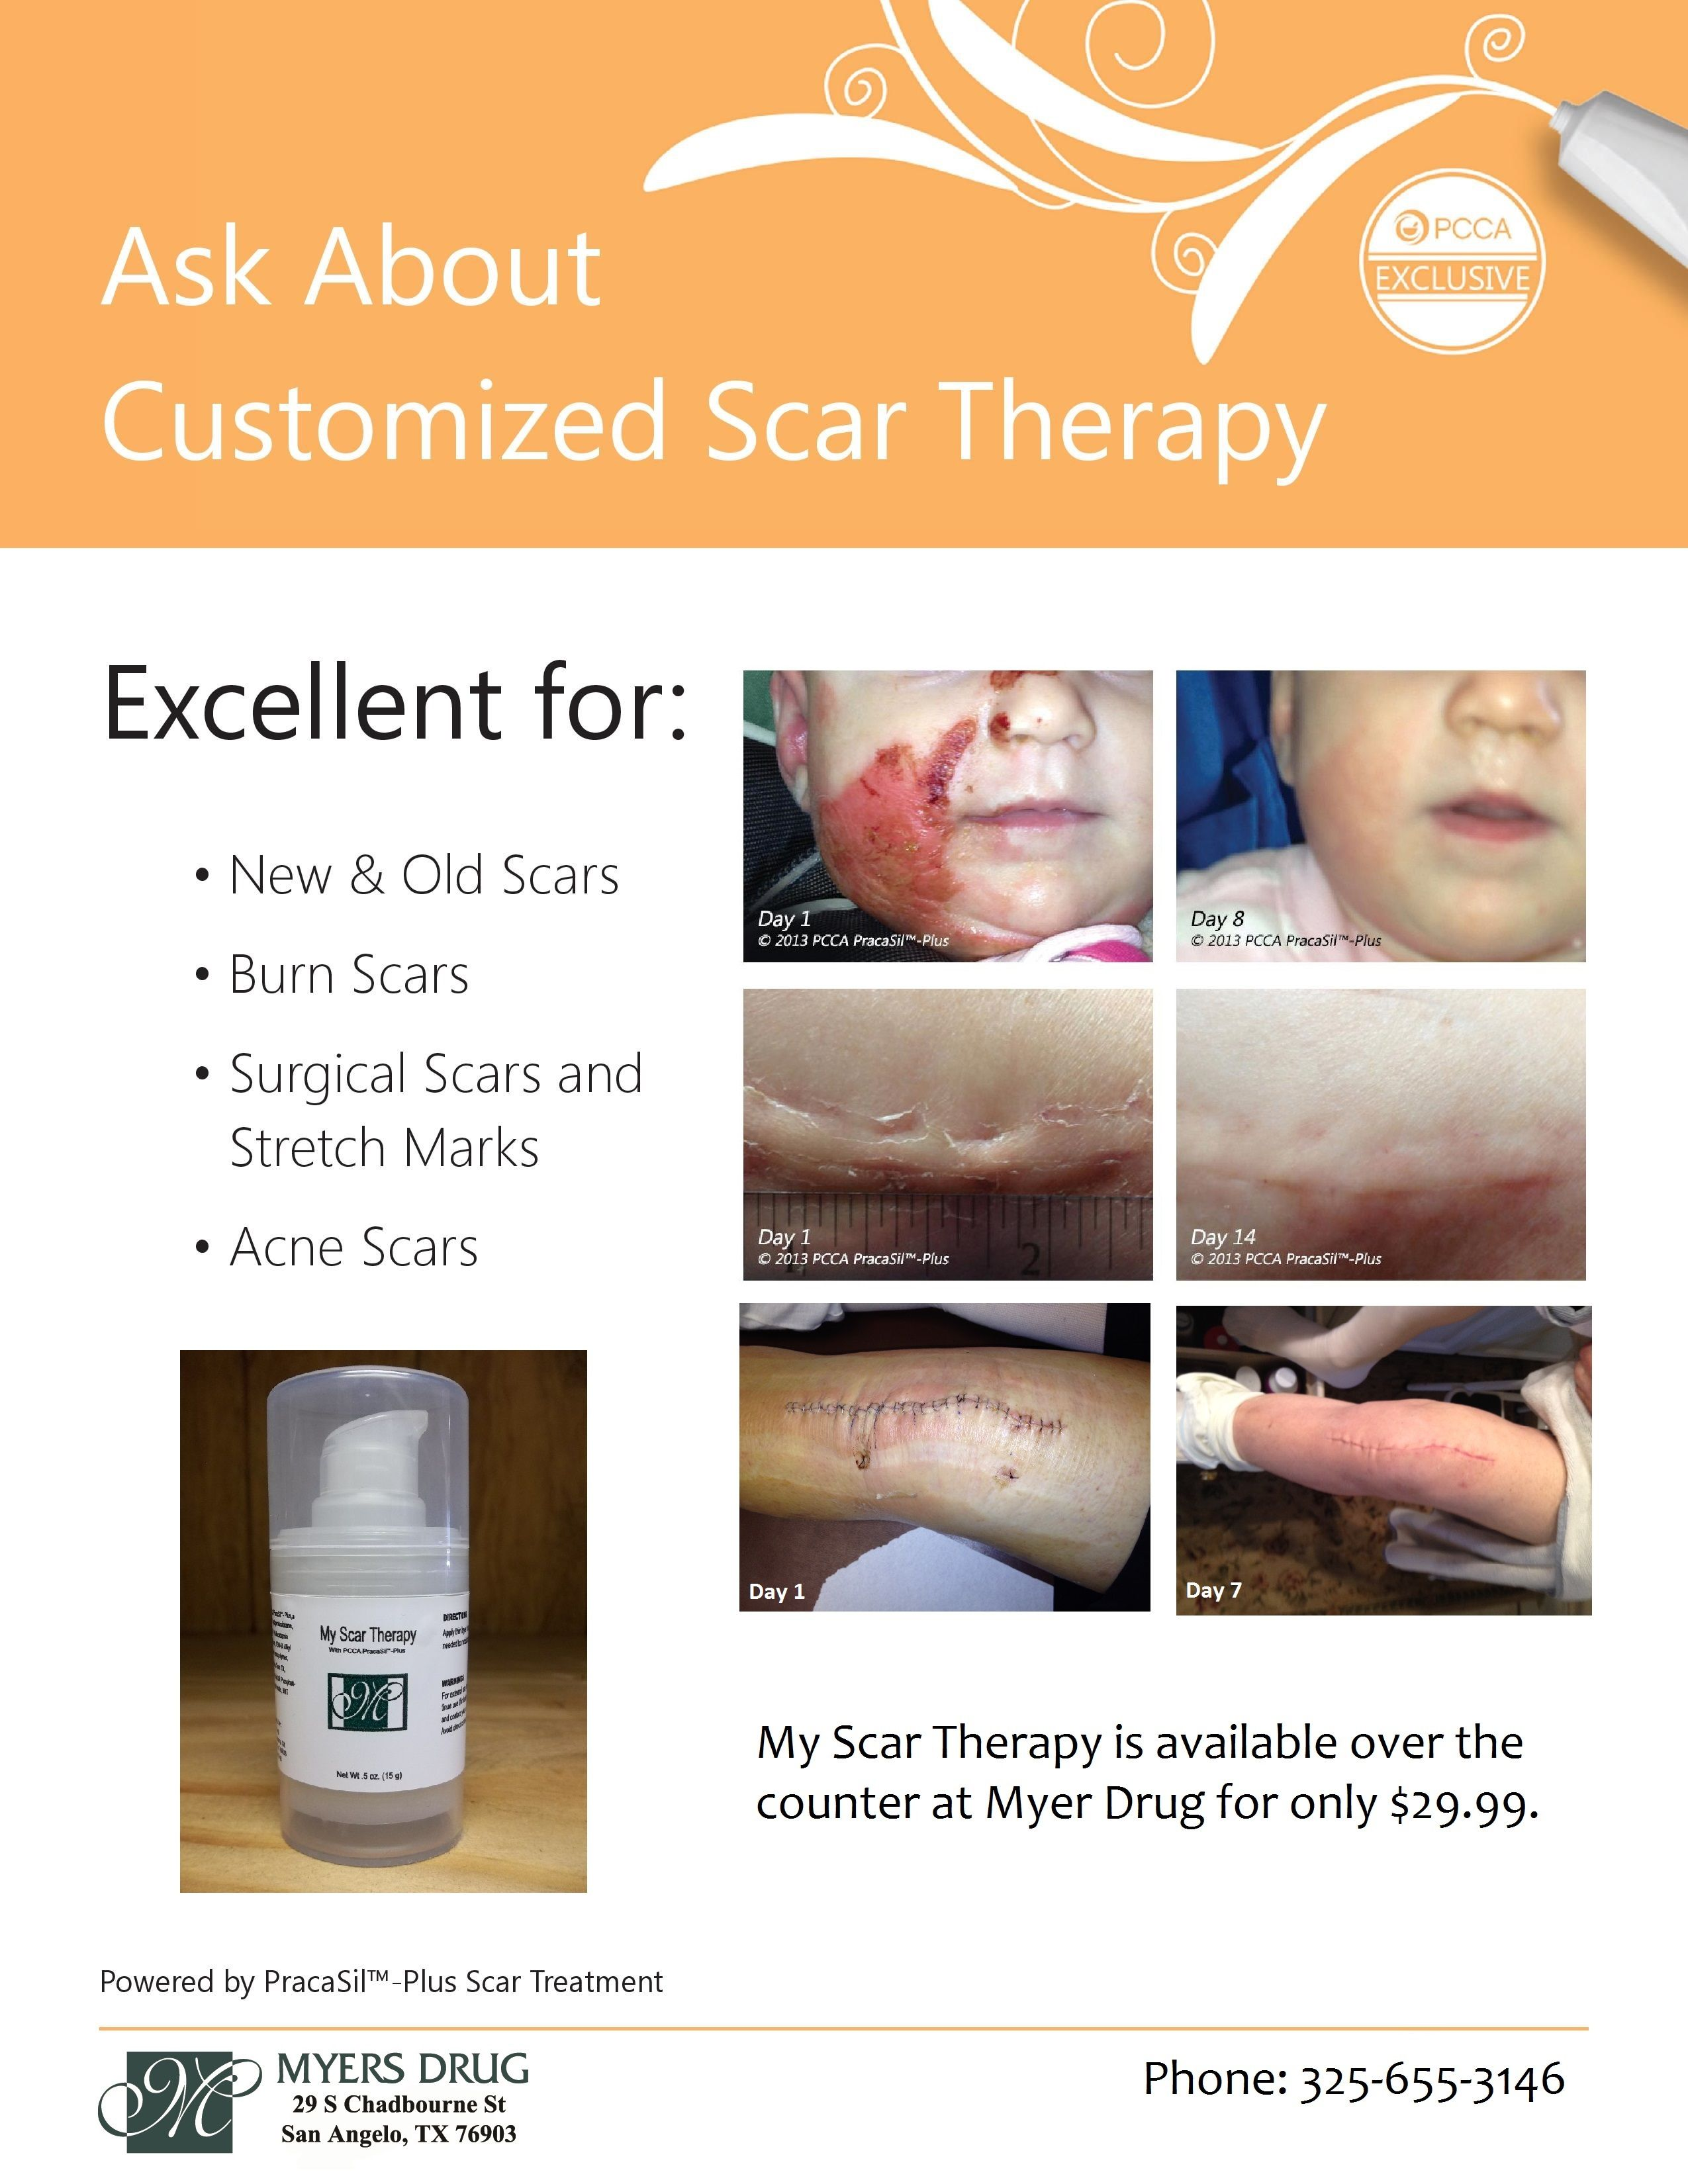 My Scar Therapy with PracaSil Plus is now available at Myers Drug